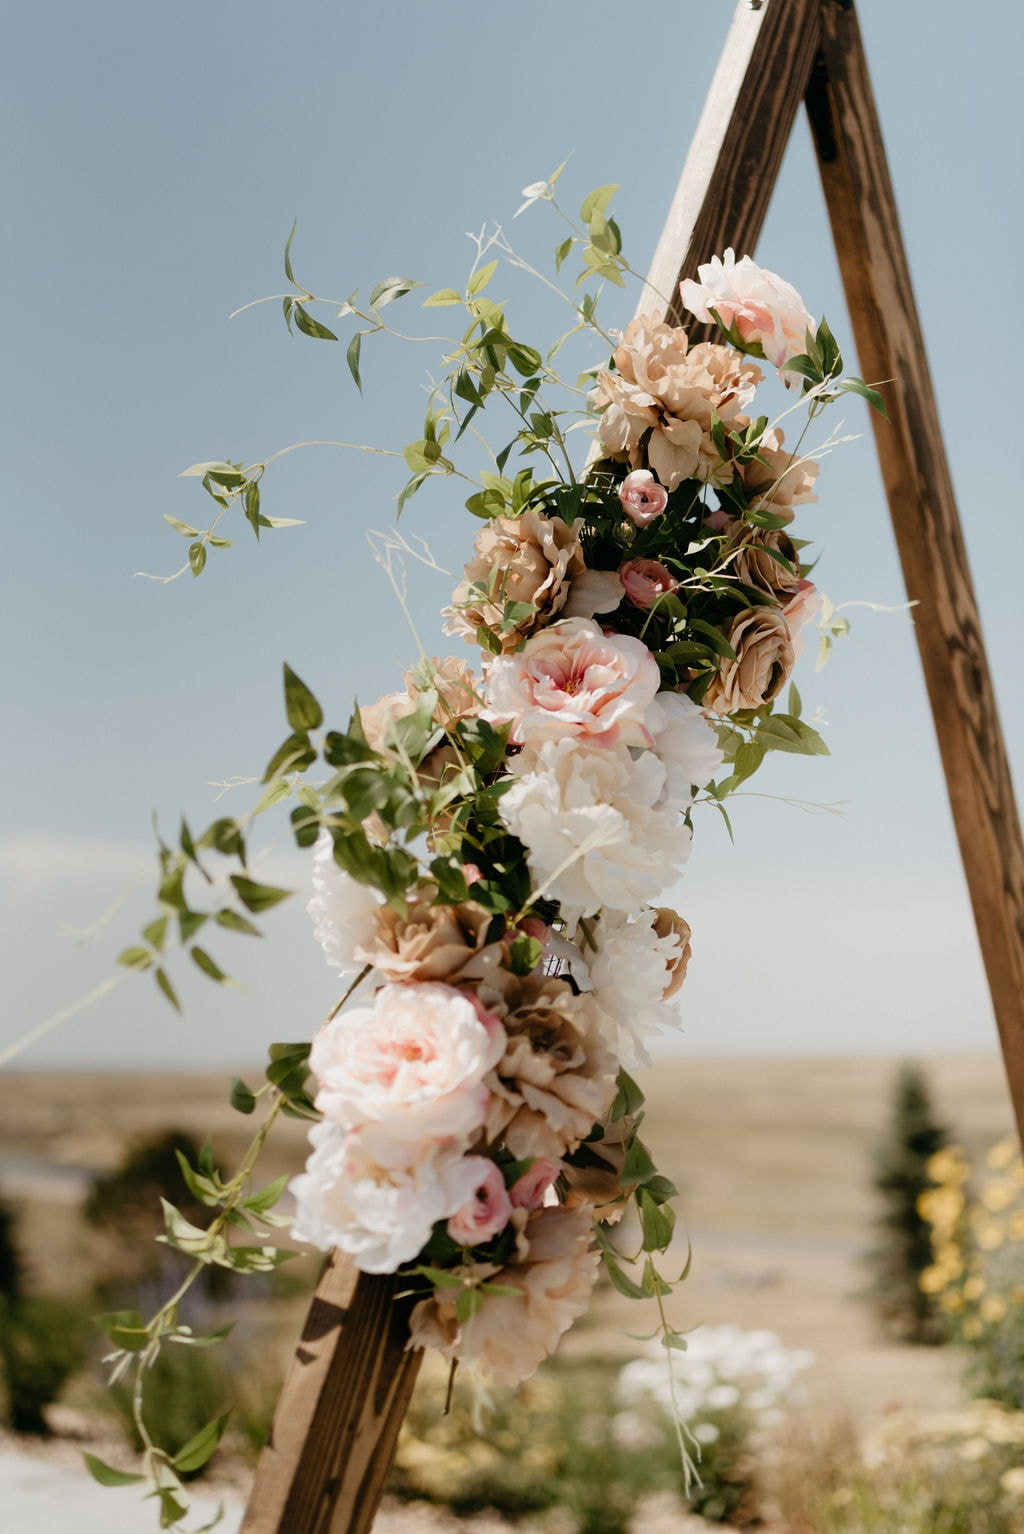 Handmade Mountain Wedding Arch Made by the Brides Family for their Bonnie Blues Event Venue Wedding